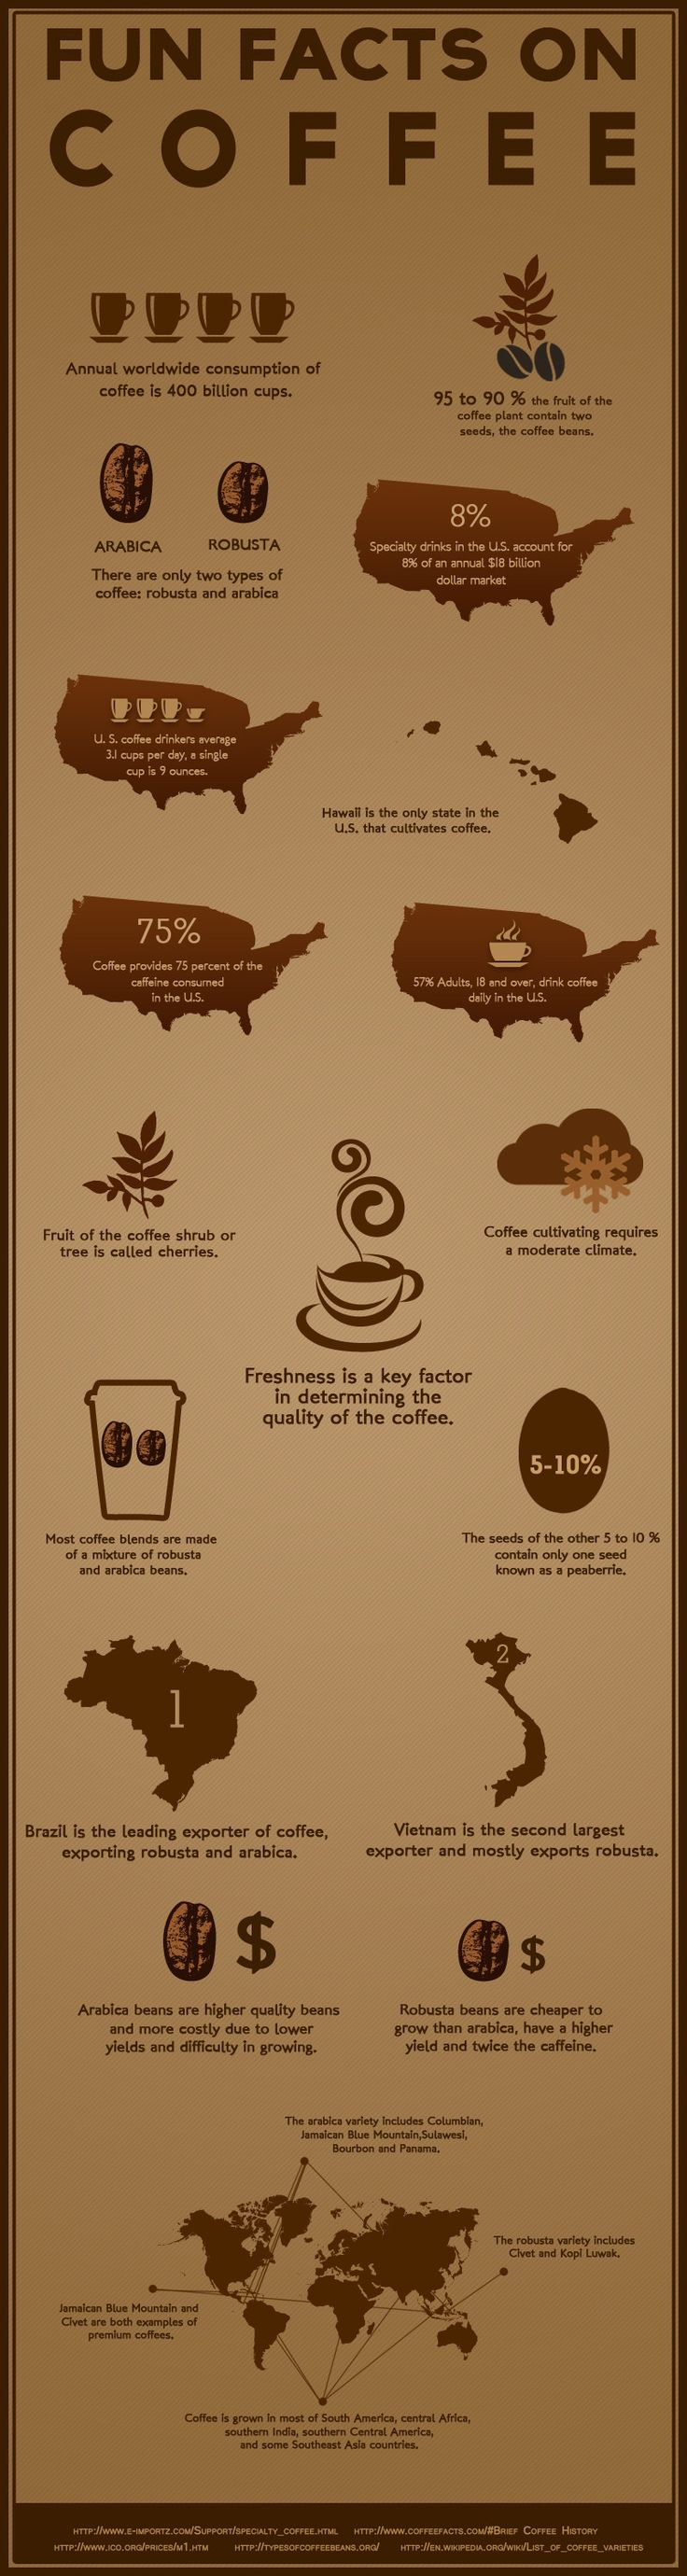 Fun facts on coffee